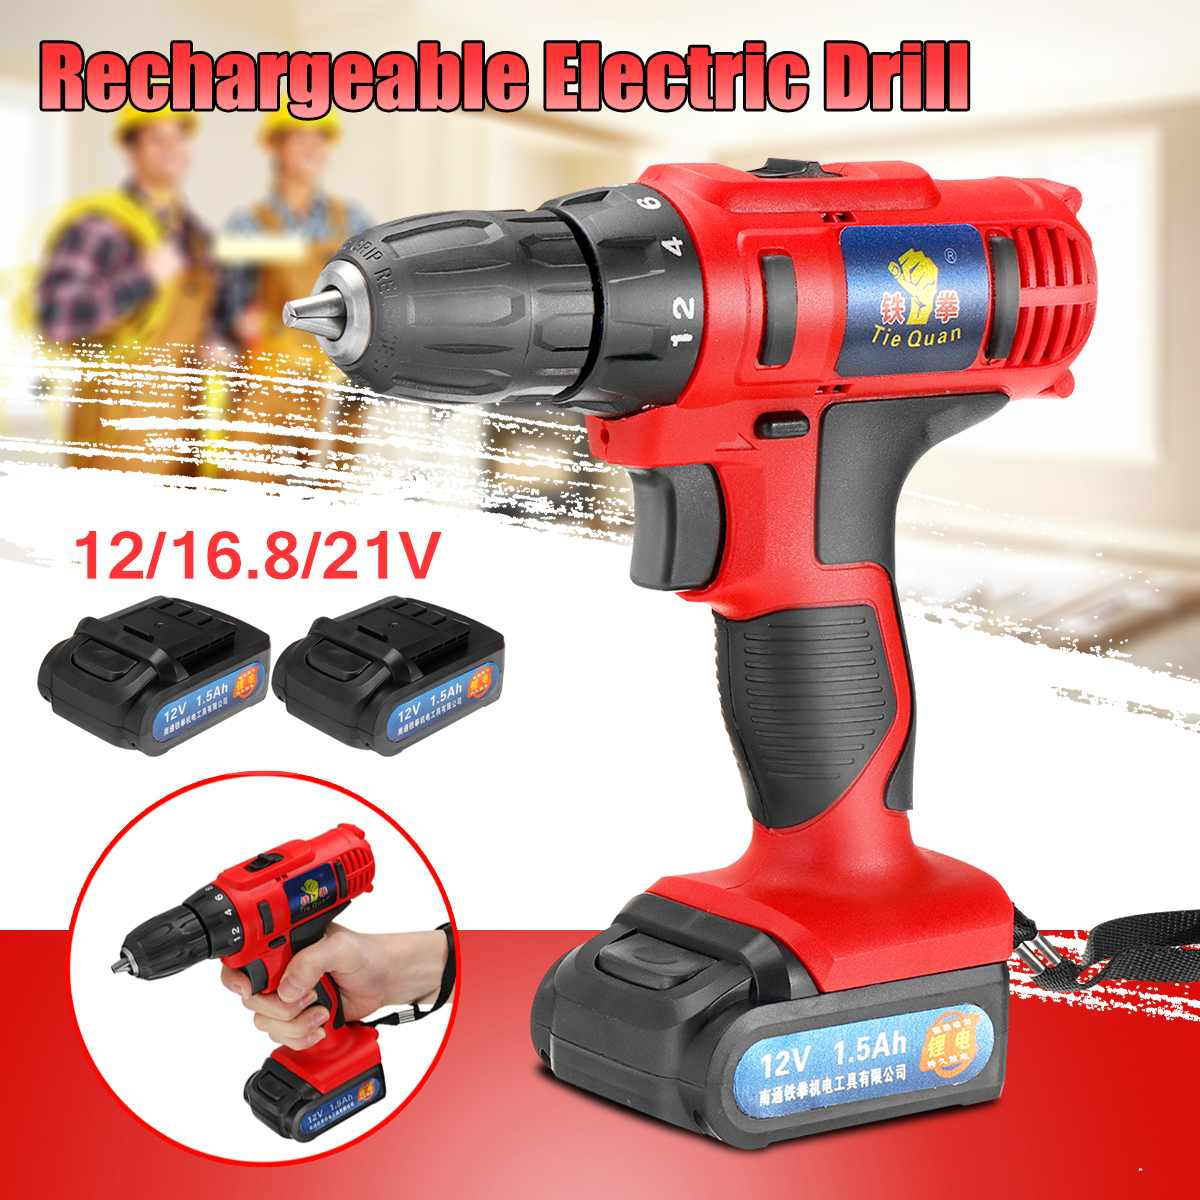 21/16.8/12V 2 Speed Cordless Rechargeable Electric Drill Screwdriver + Battery for DIY Home General Building High Efficiency21/16.8/12V 2 Speed Cordless Rechargeable Electric Drill Screwdriver + Battery for DIY Home General Building High Efficiency